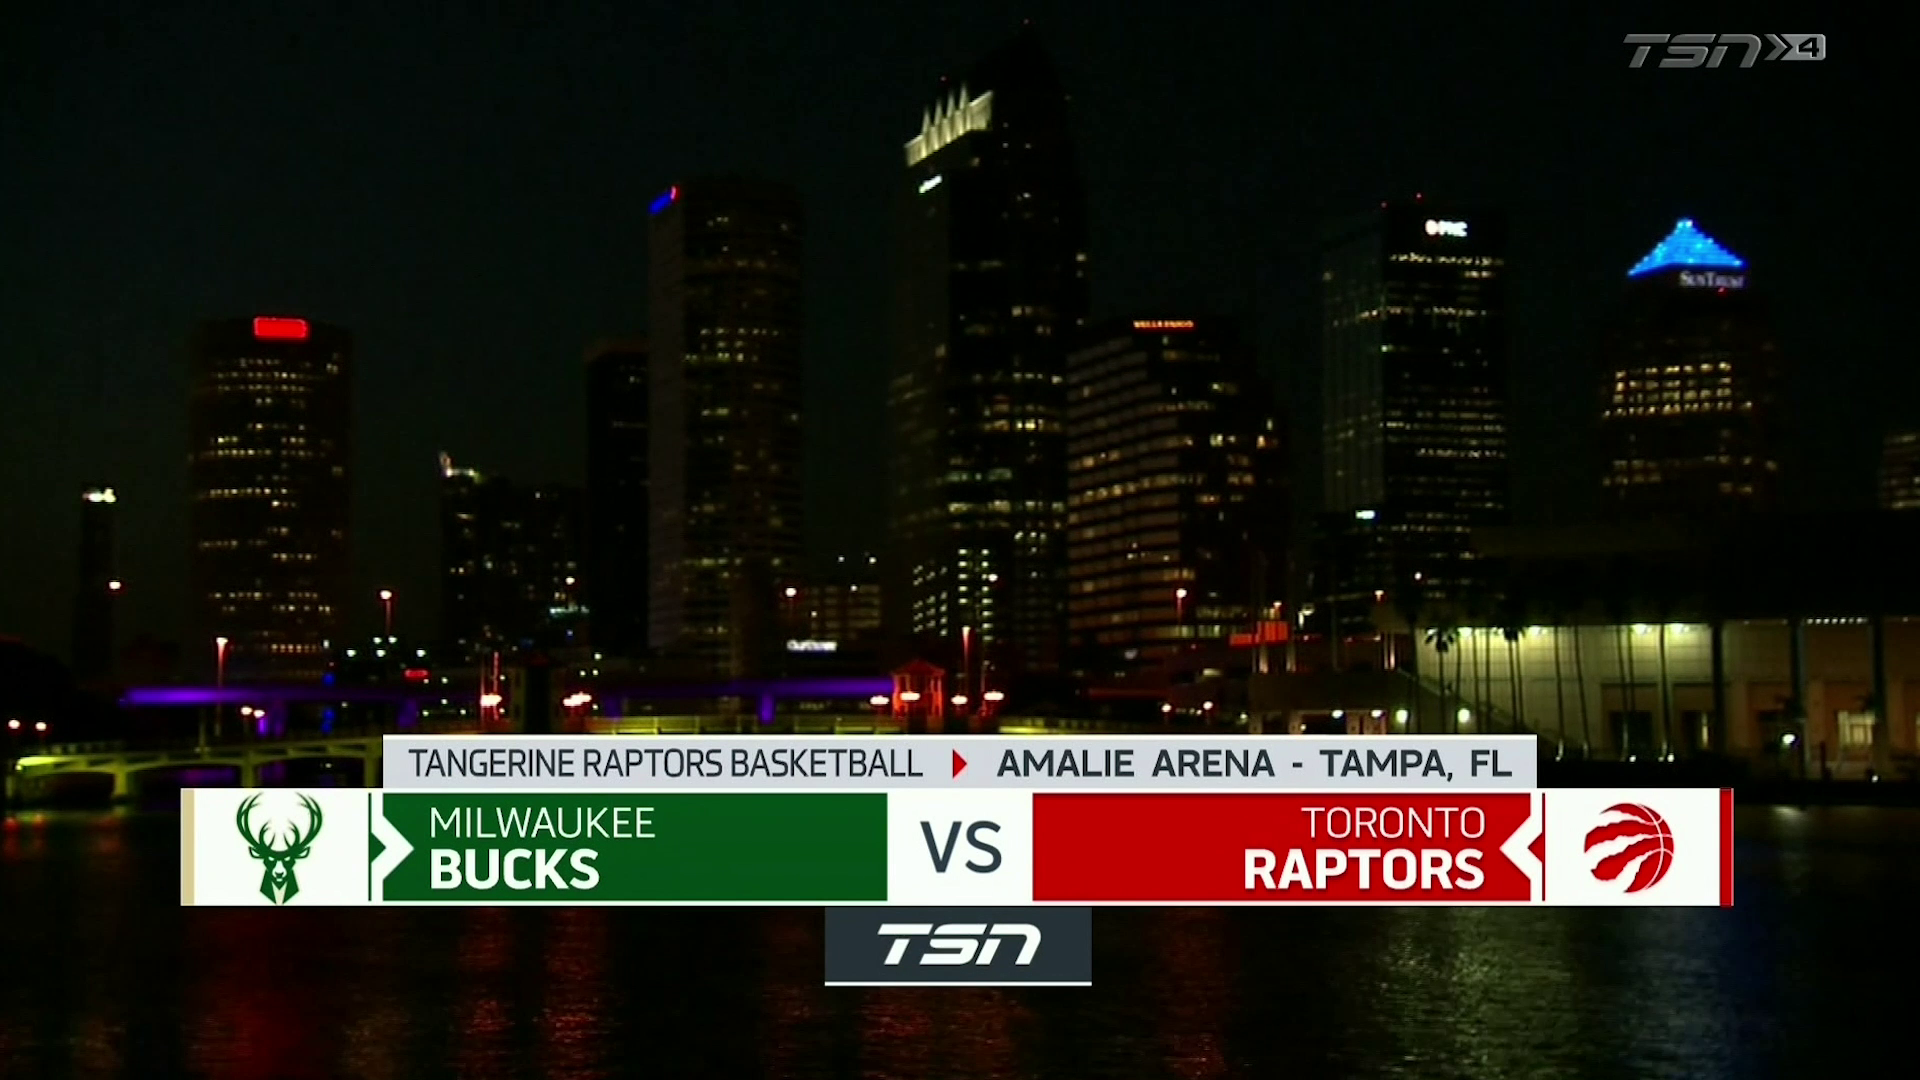 Game Highlights: Raptors vs Bucks - January 27, 2021